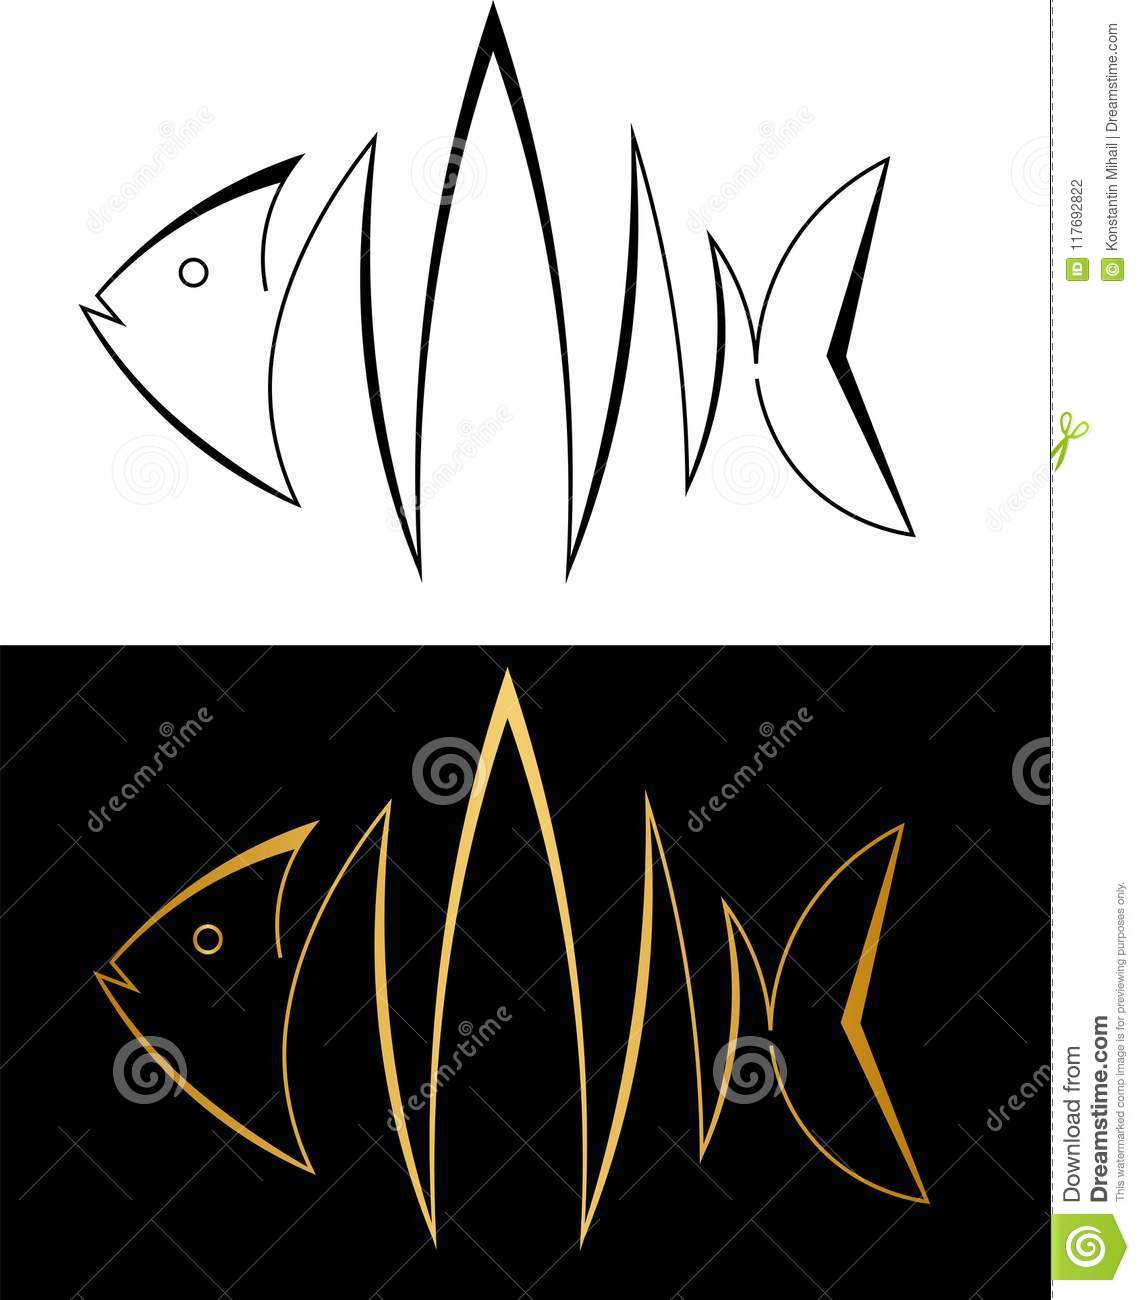 Silhouette of fish from lines fish minimalistic art logo